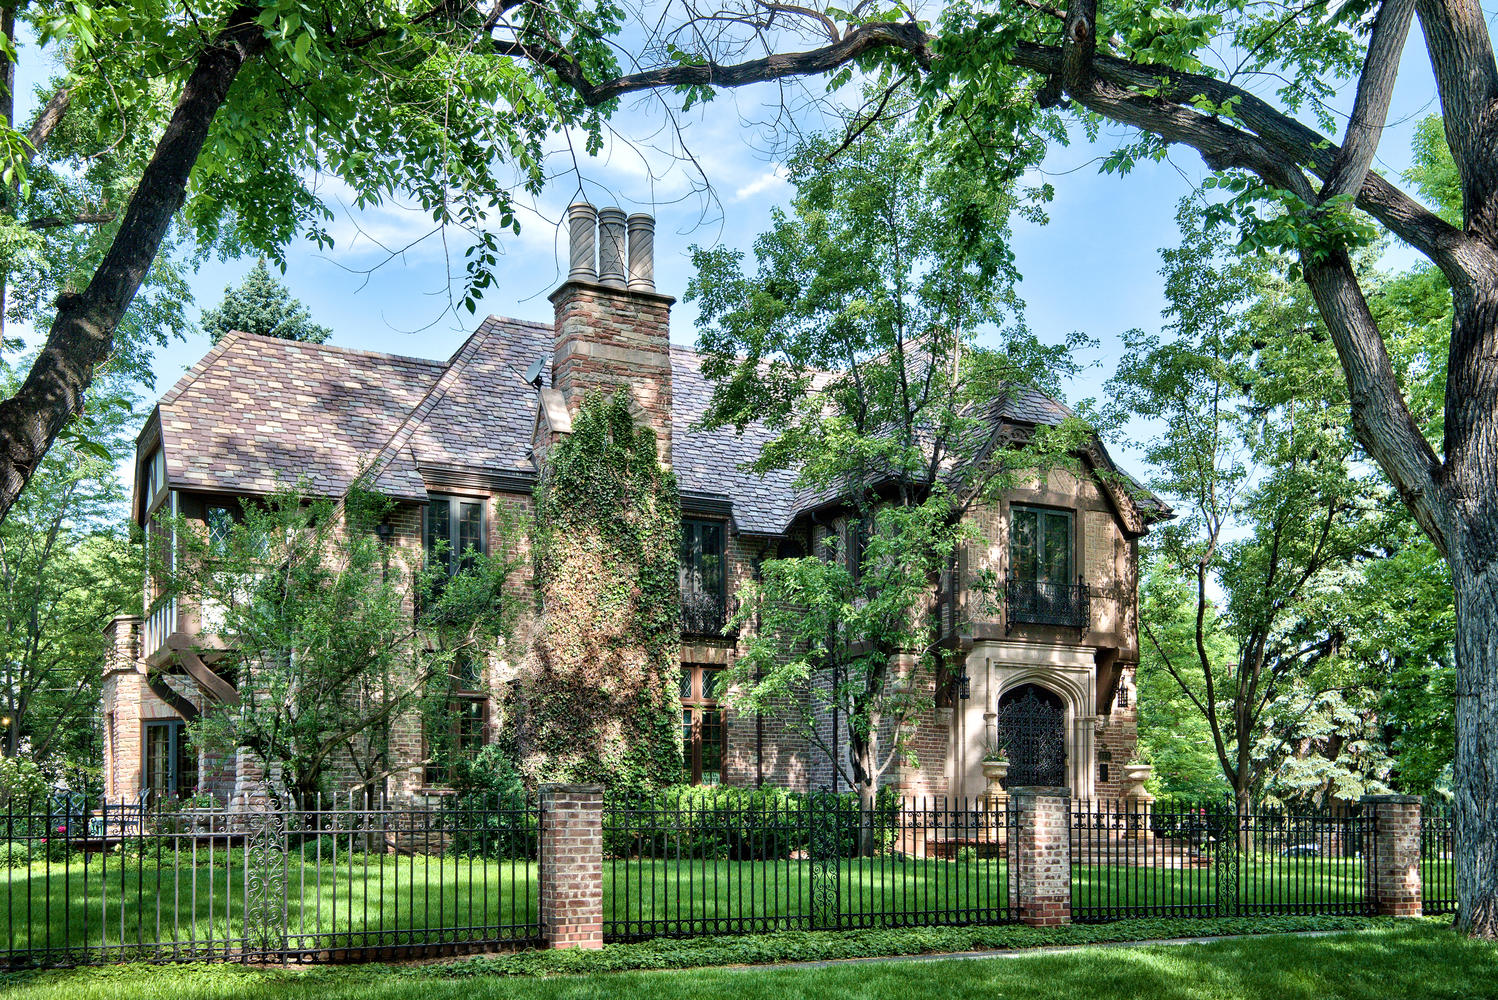 Single Family Home for Sale at Spectacular Tudor on a Beautiful Half Acre in Historic Denver Country Club 177 Humboldt Street Denver, Colorado, 80218 United States